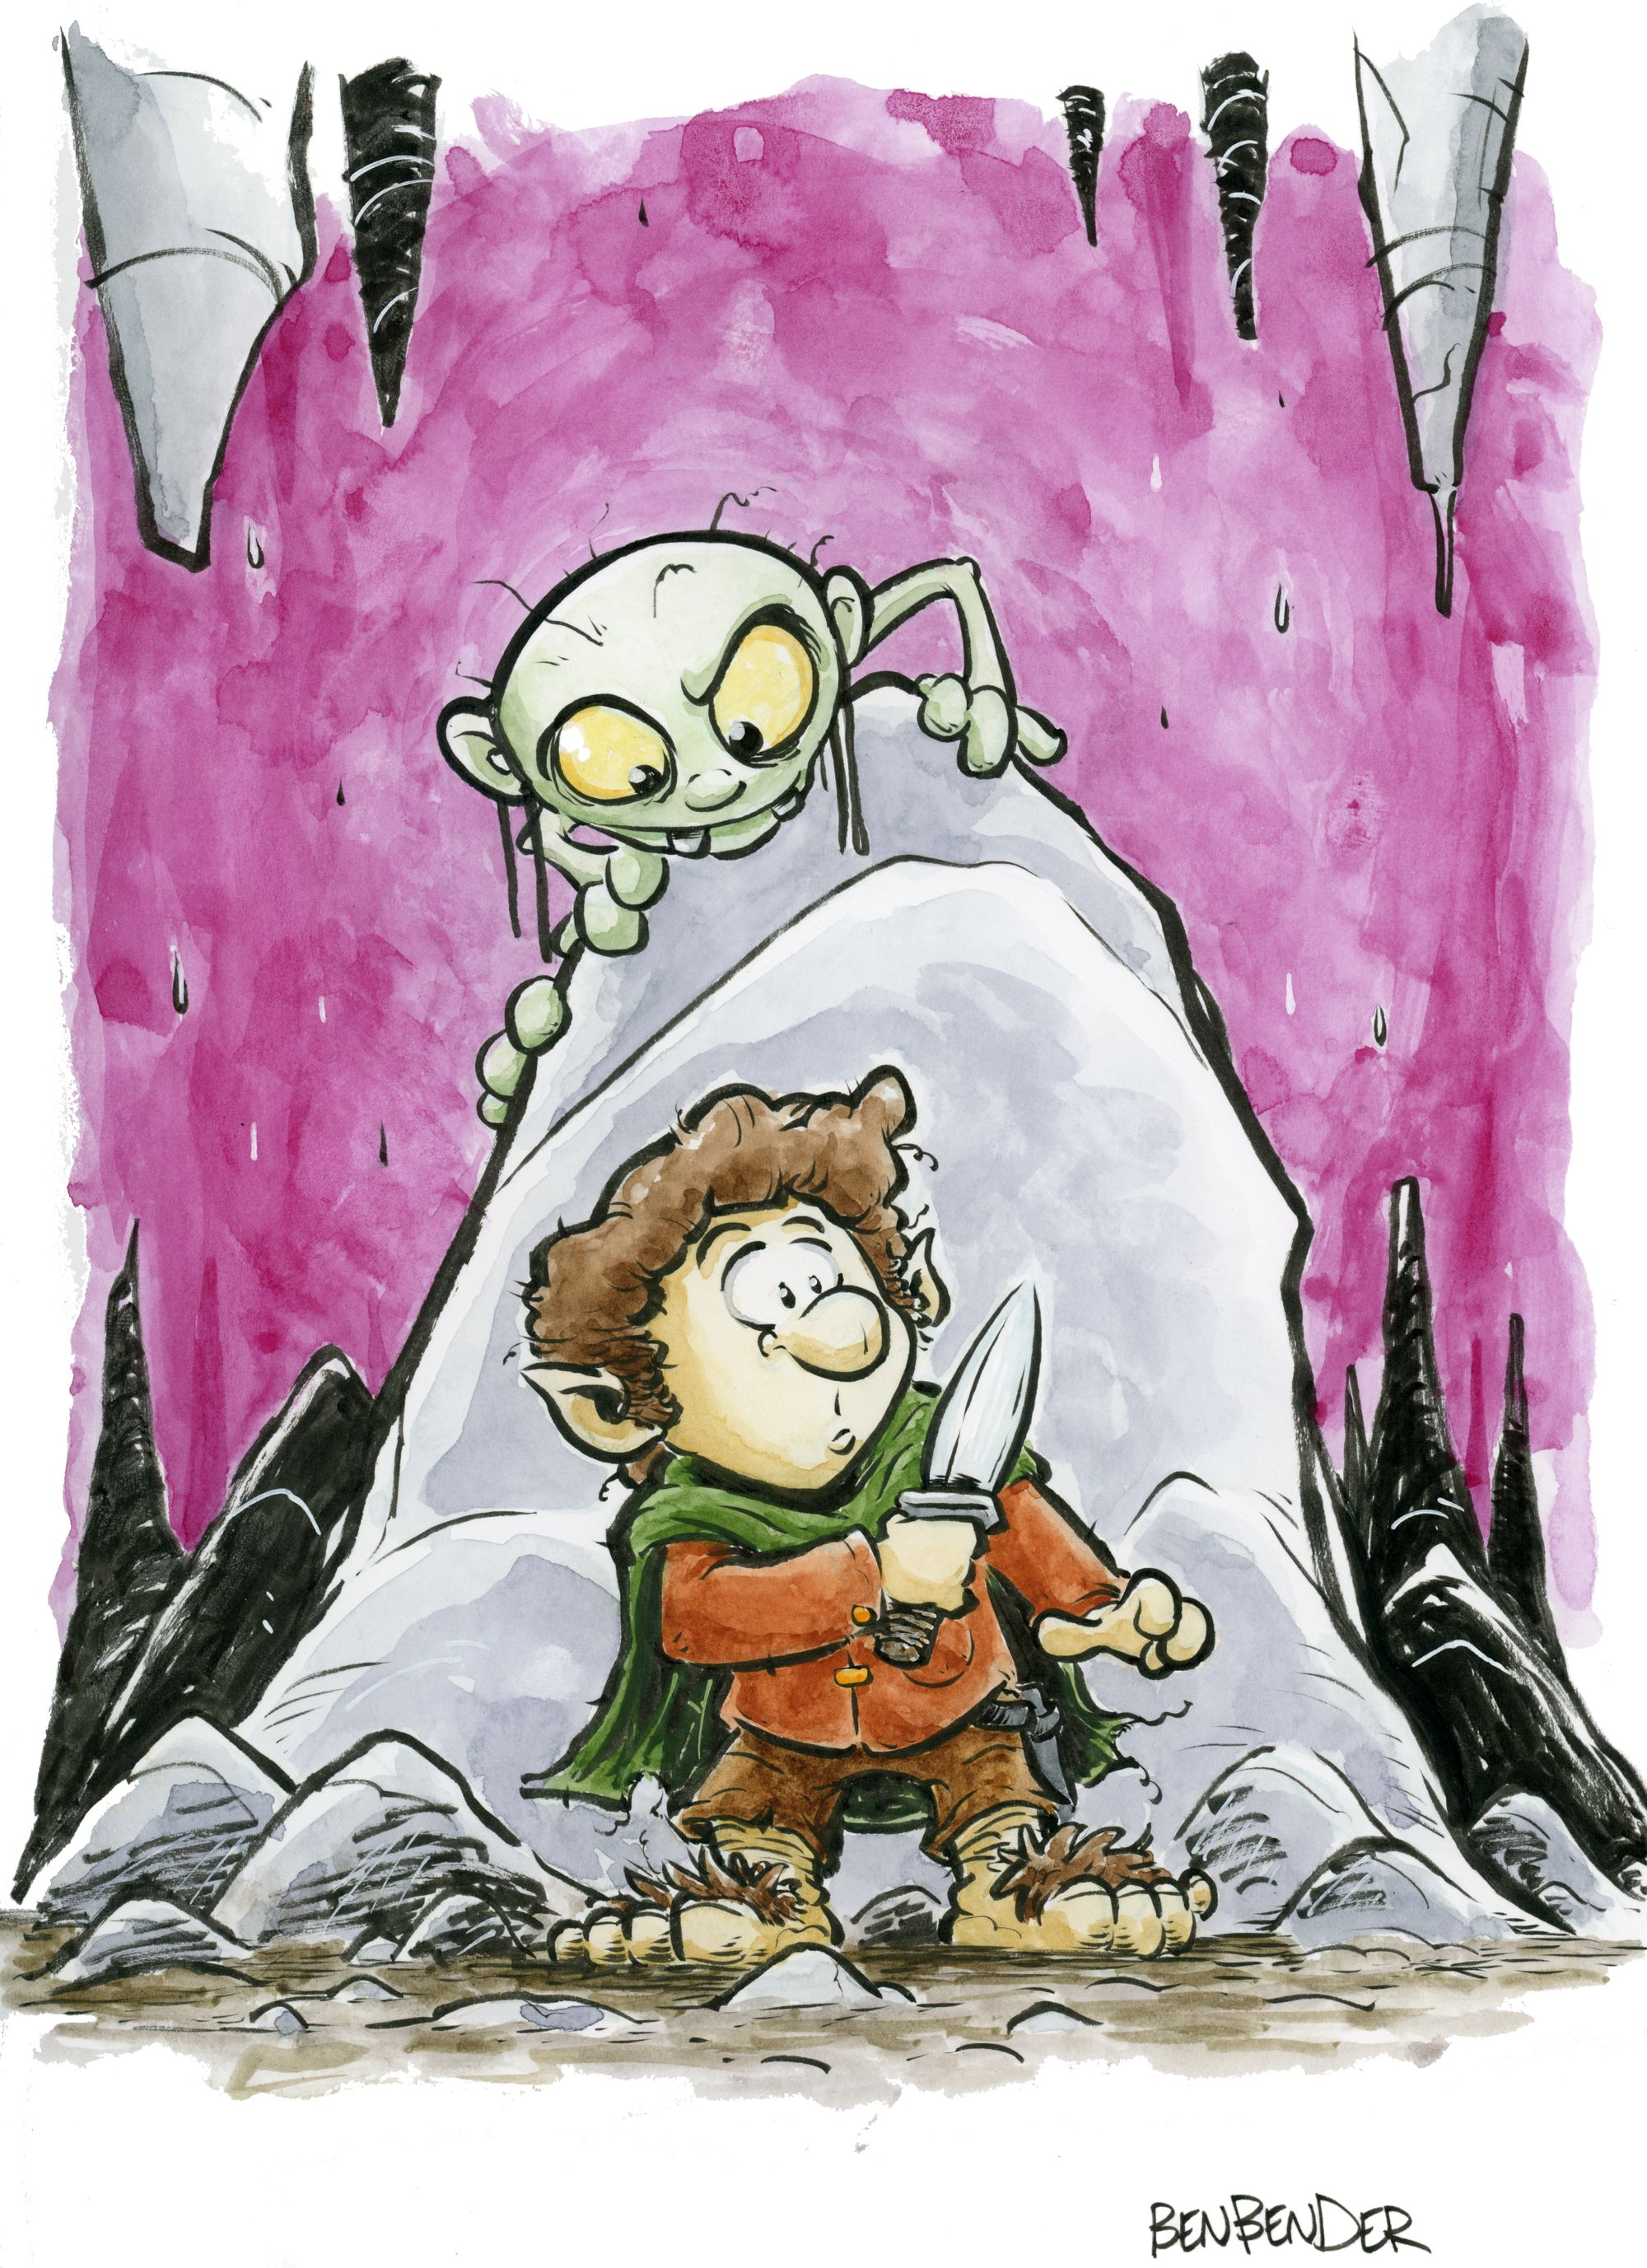 Bilbo and Gollum